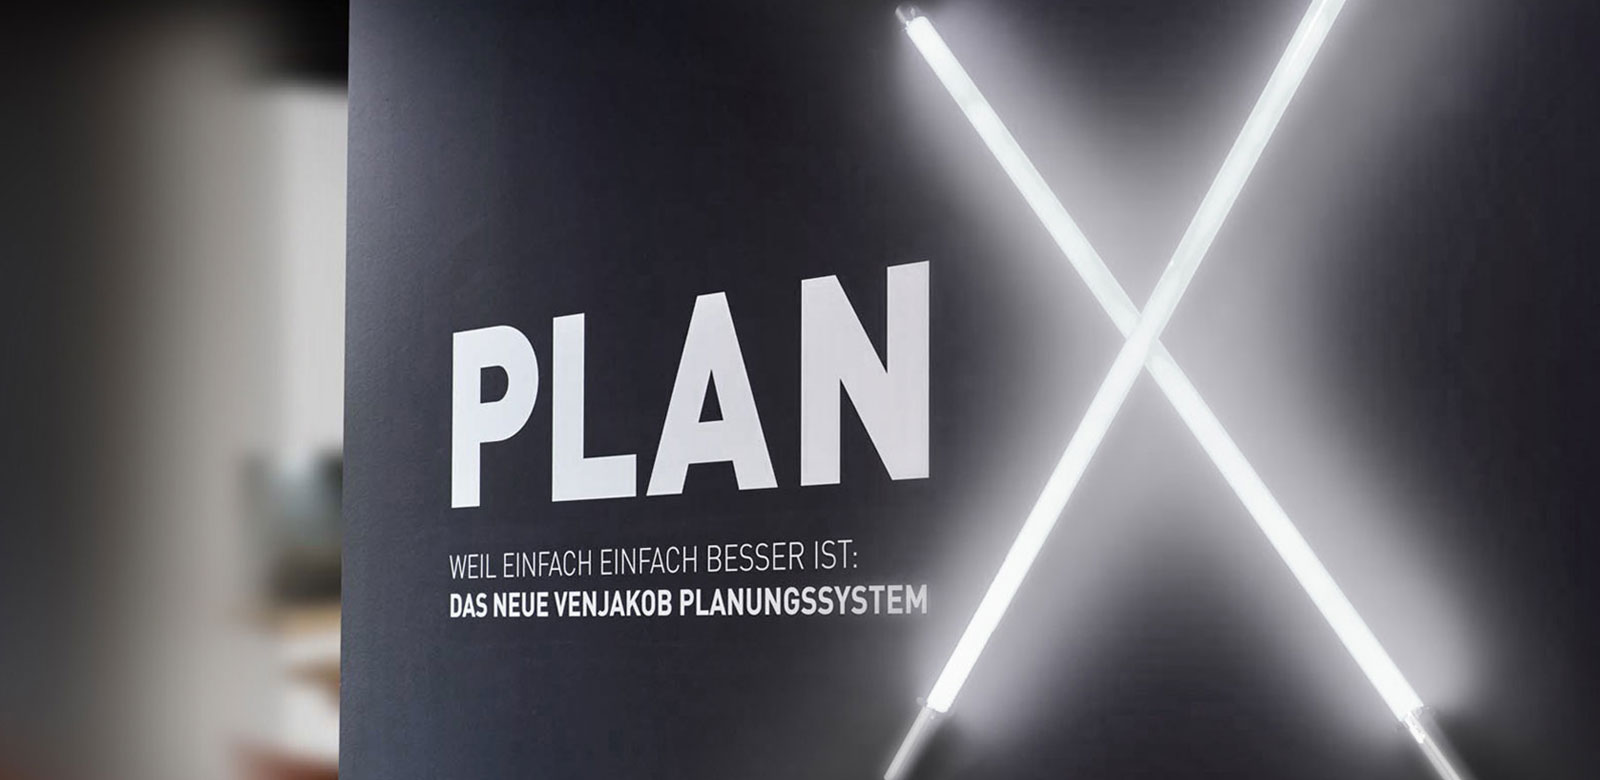 PLAN X THE NEW VENJAKOB PLANNING SYSTEM.